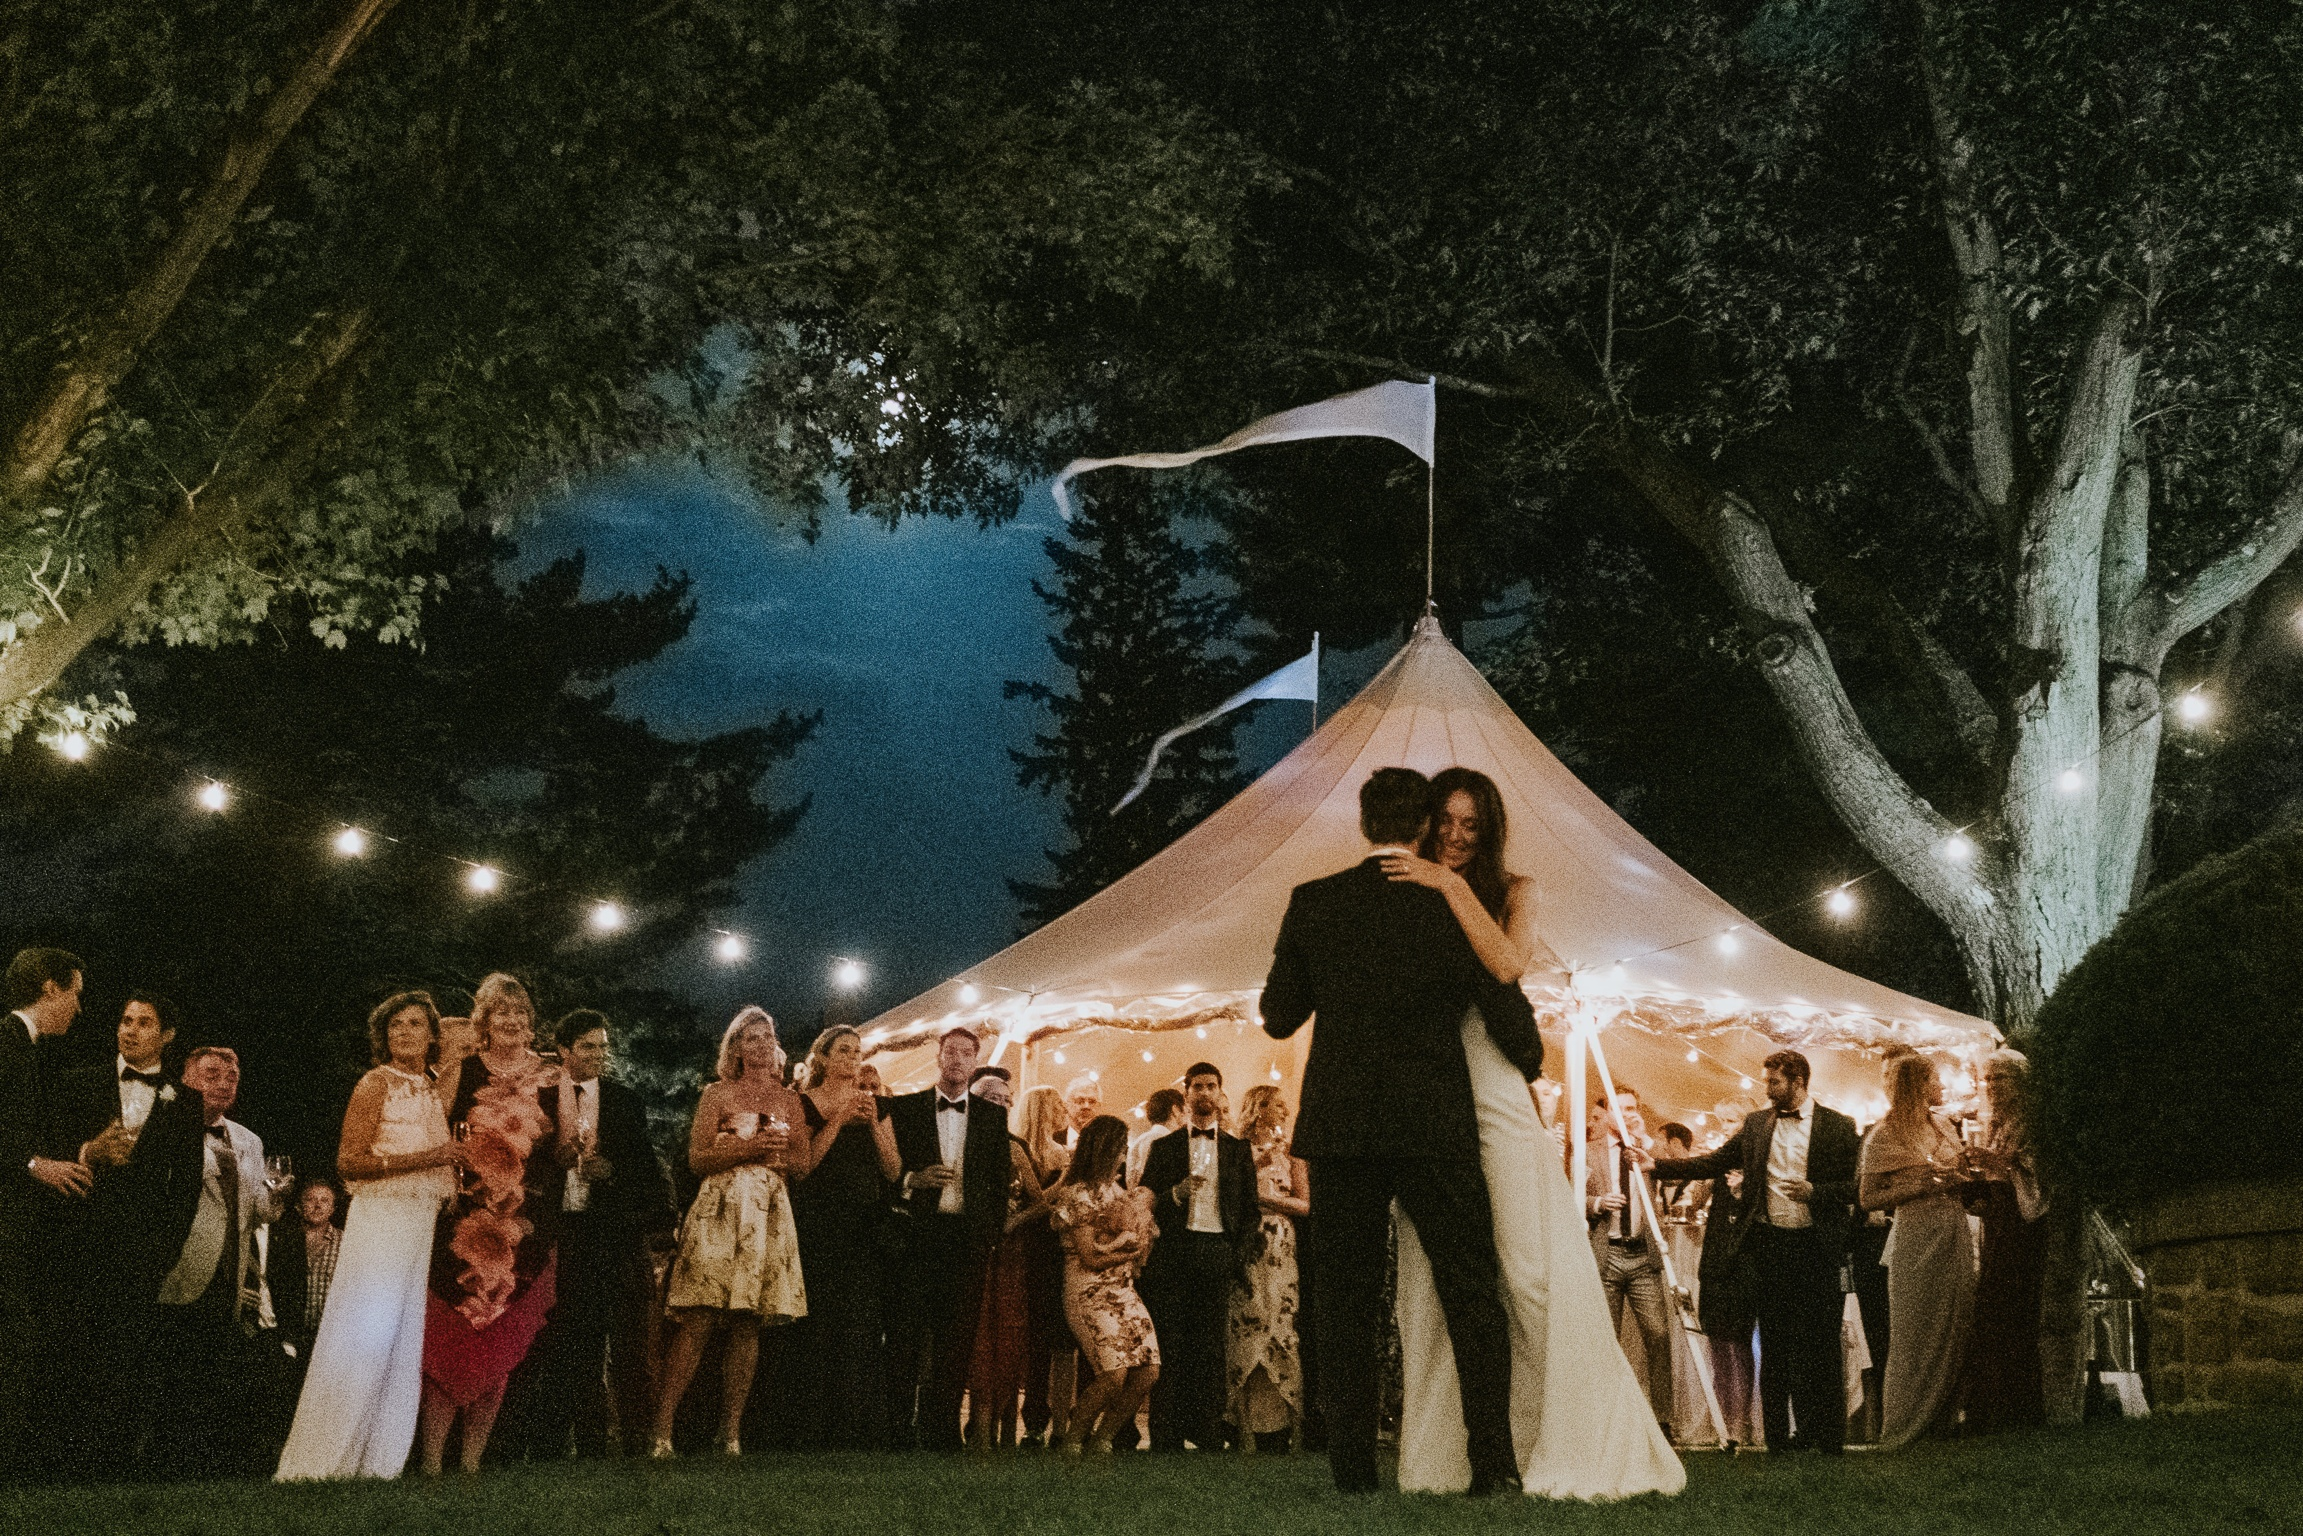 First dance at outdoor tented wedding reception photographed by Joel & Justyna - Ottawa wedding photographers